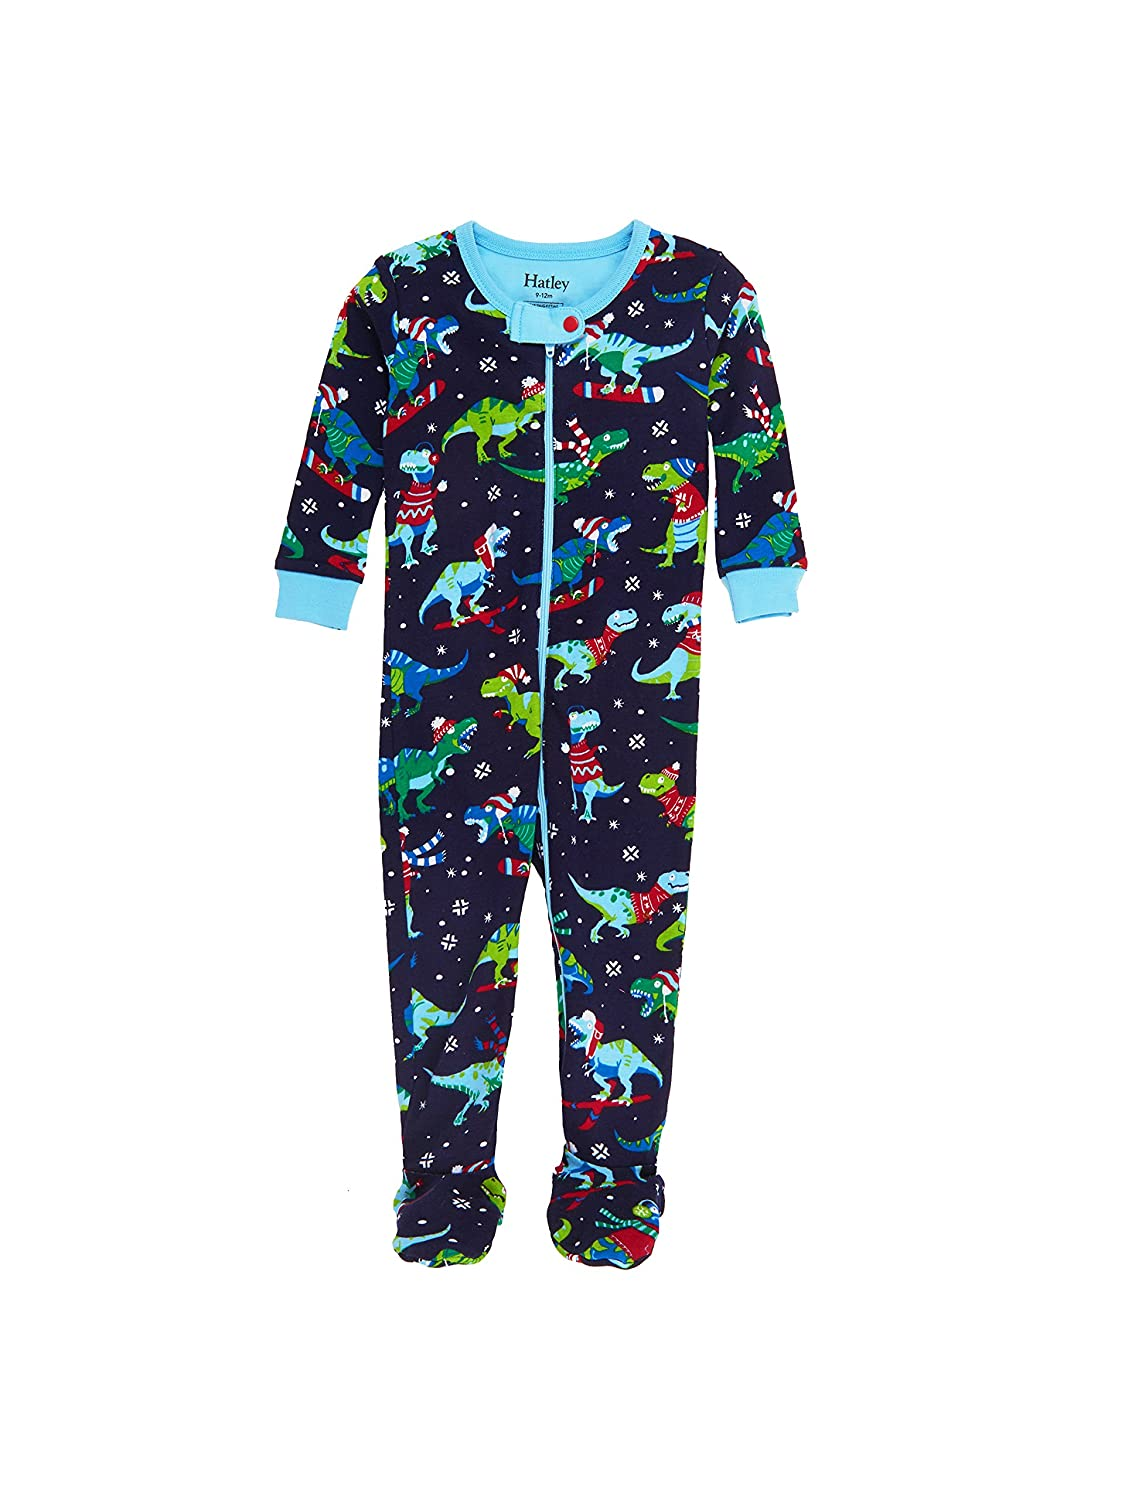 Hatley Baby Boys' Organic Cotton Footed Sleeper Hatley Children's Apparel DR5FCBI